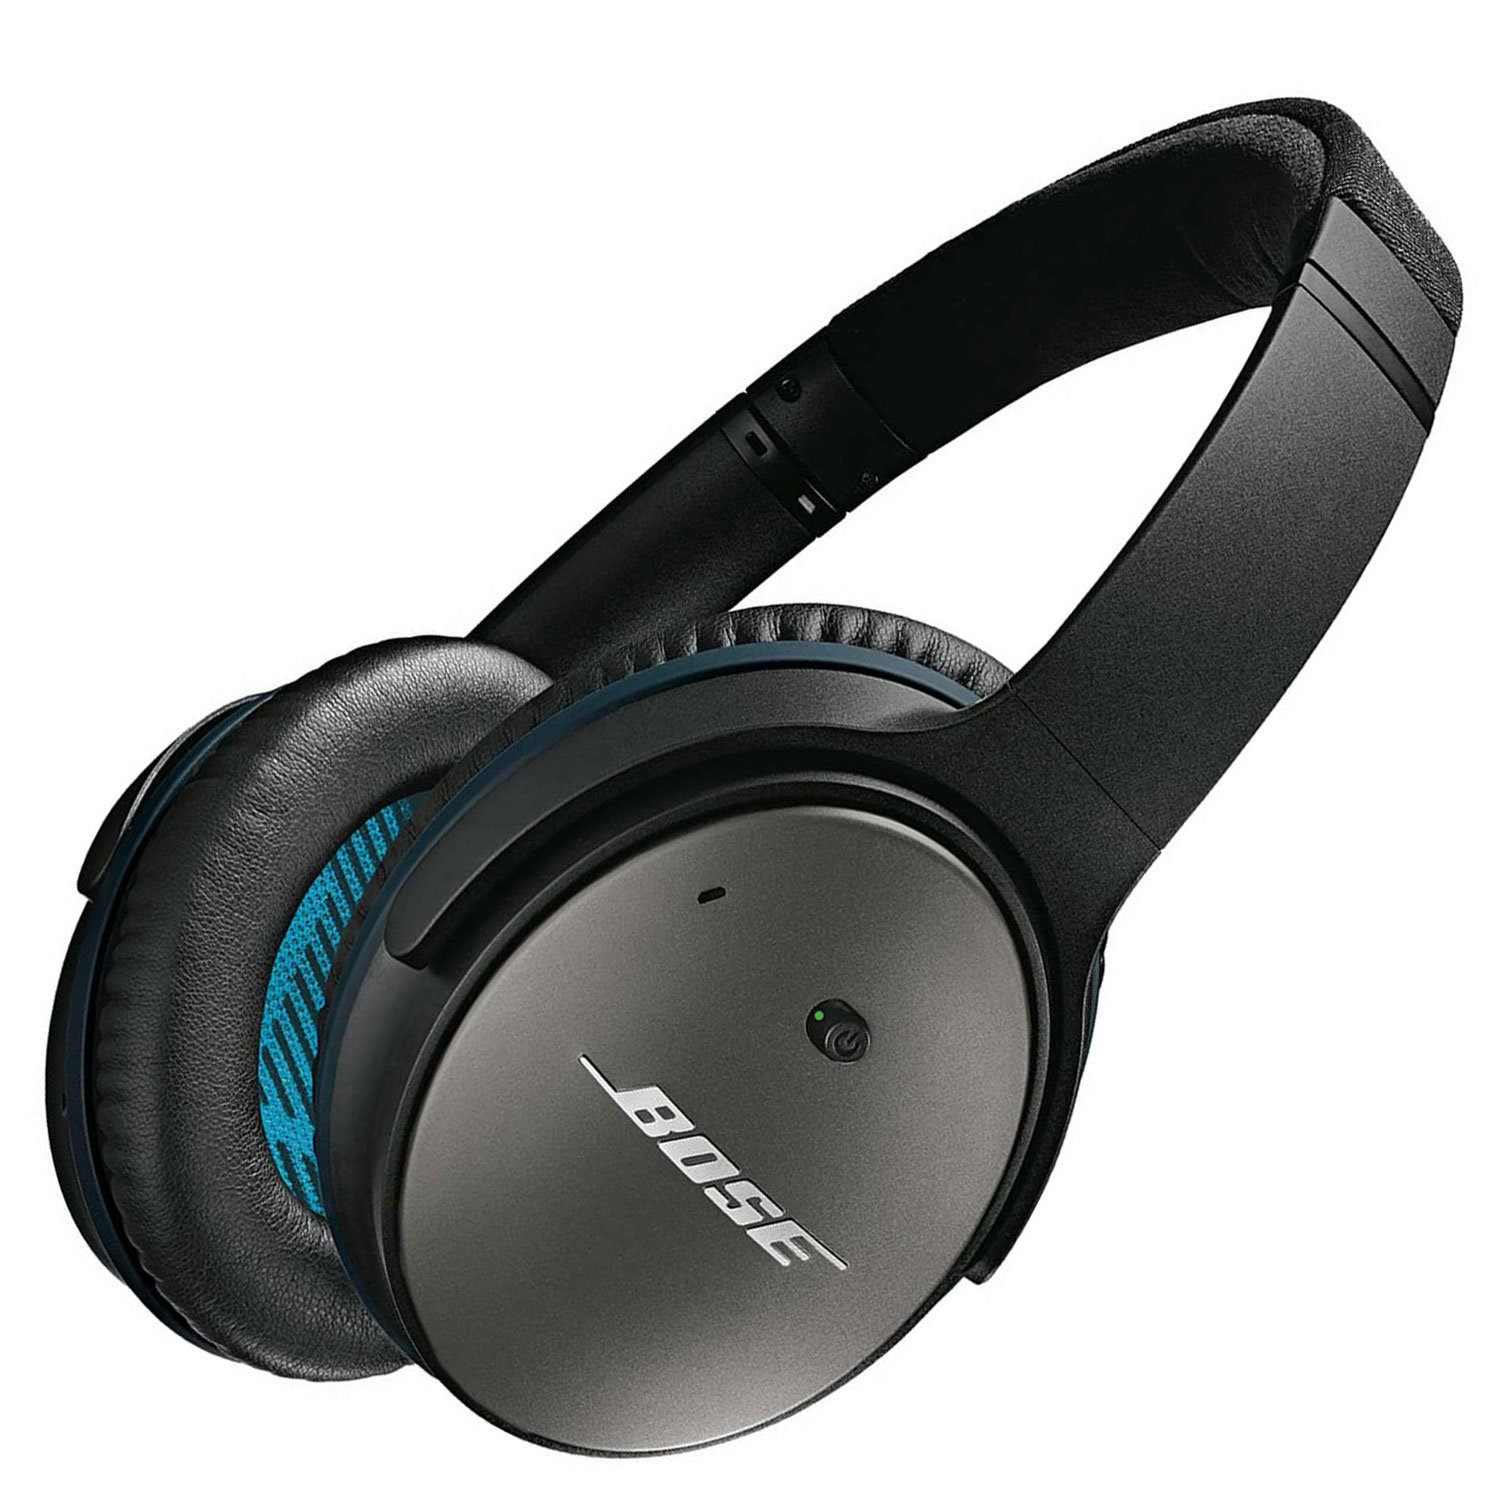 Bose QuietComfort 25 Acoustic Noise Cancelling Headphones for Samsung and Android devices, Black (wired, 3.5mm) by Bose